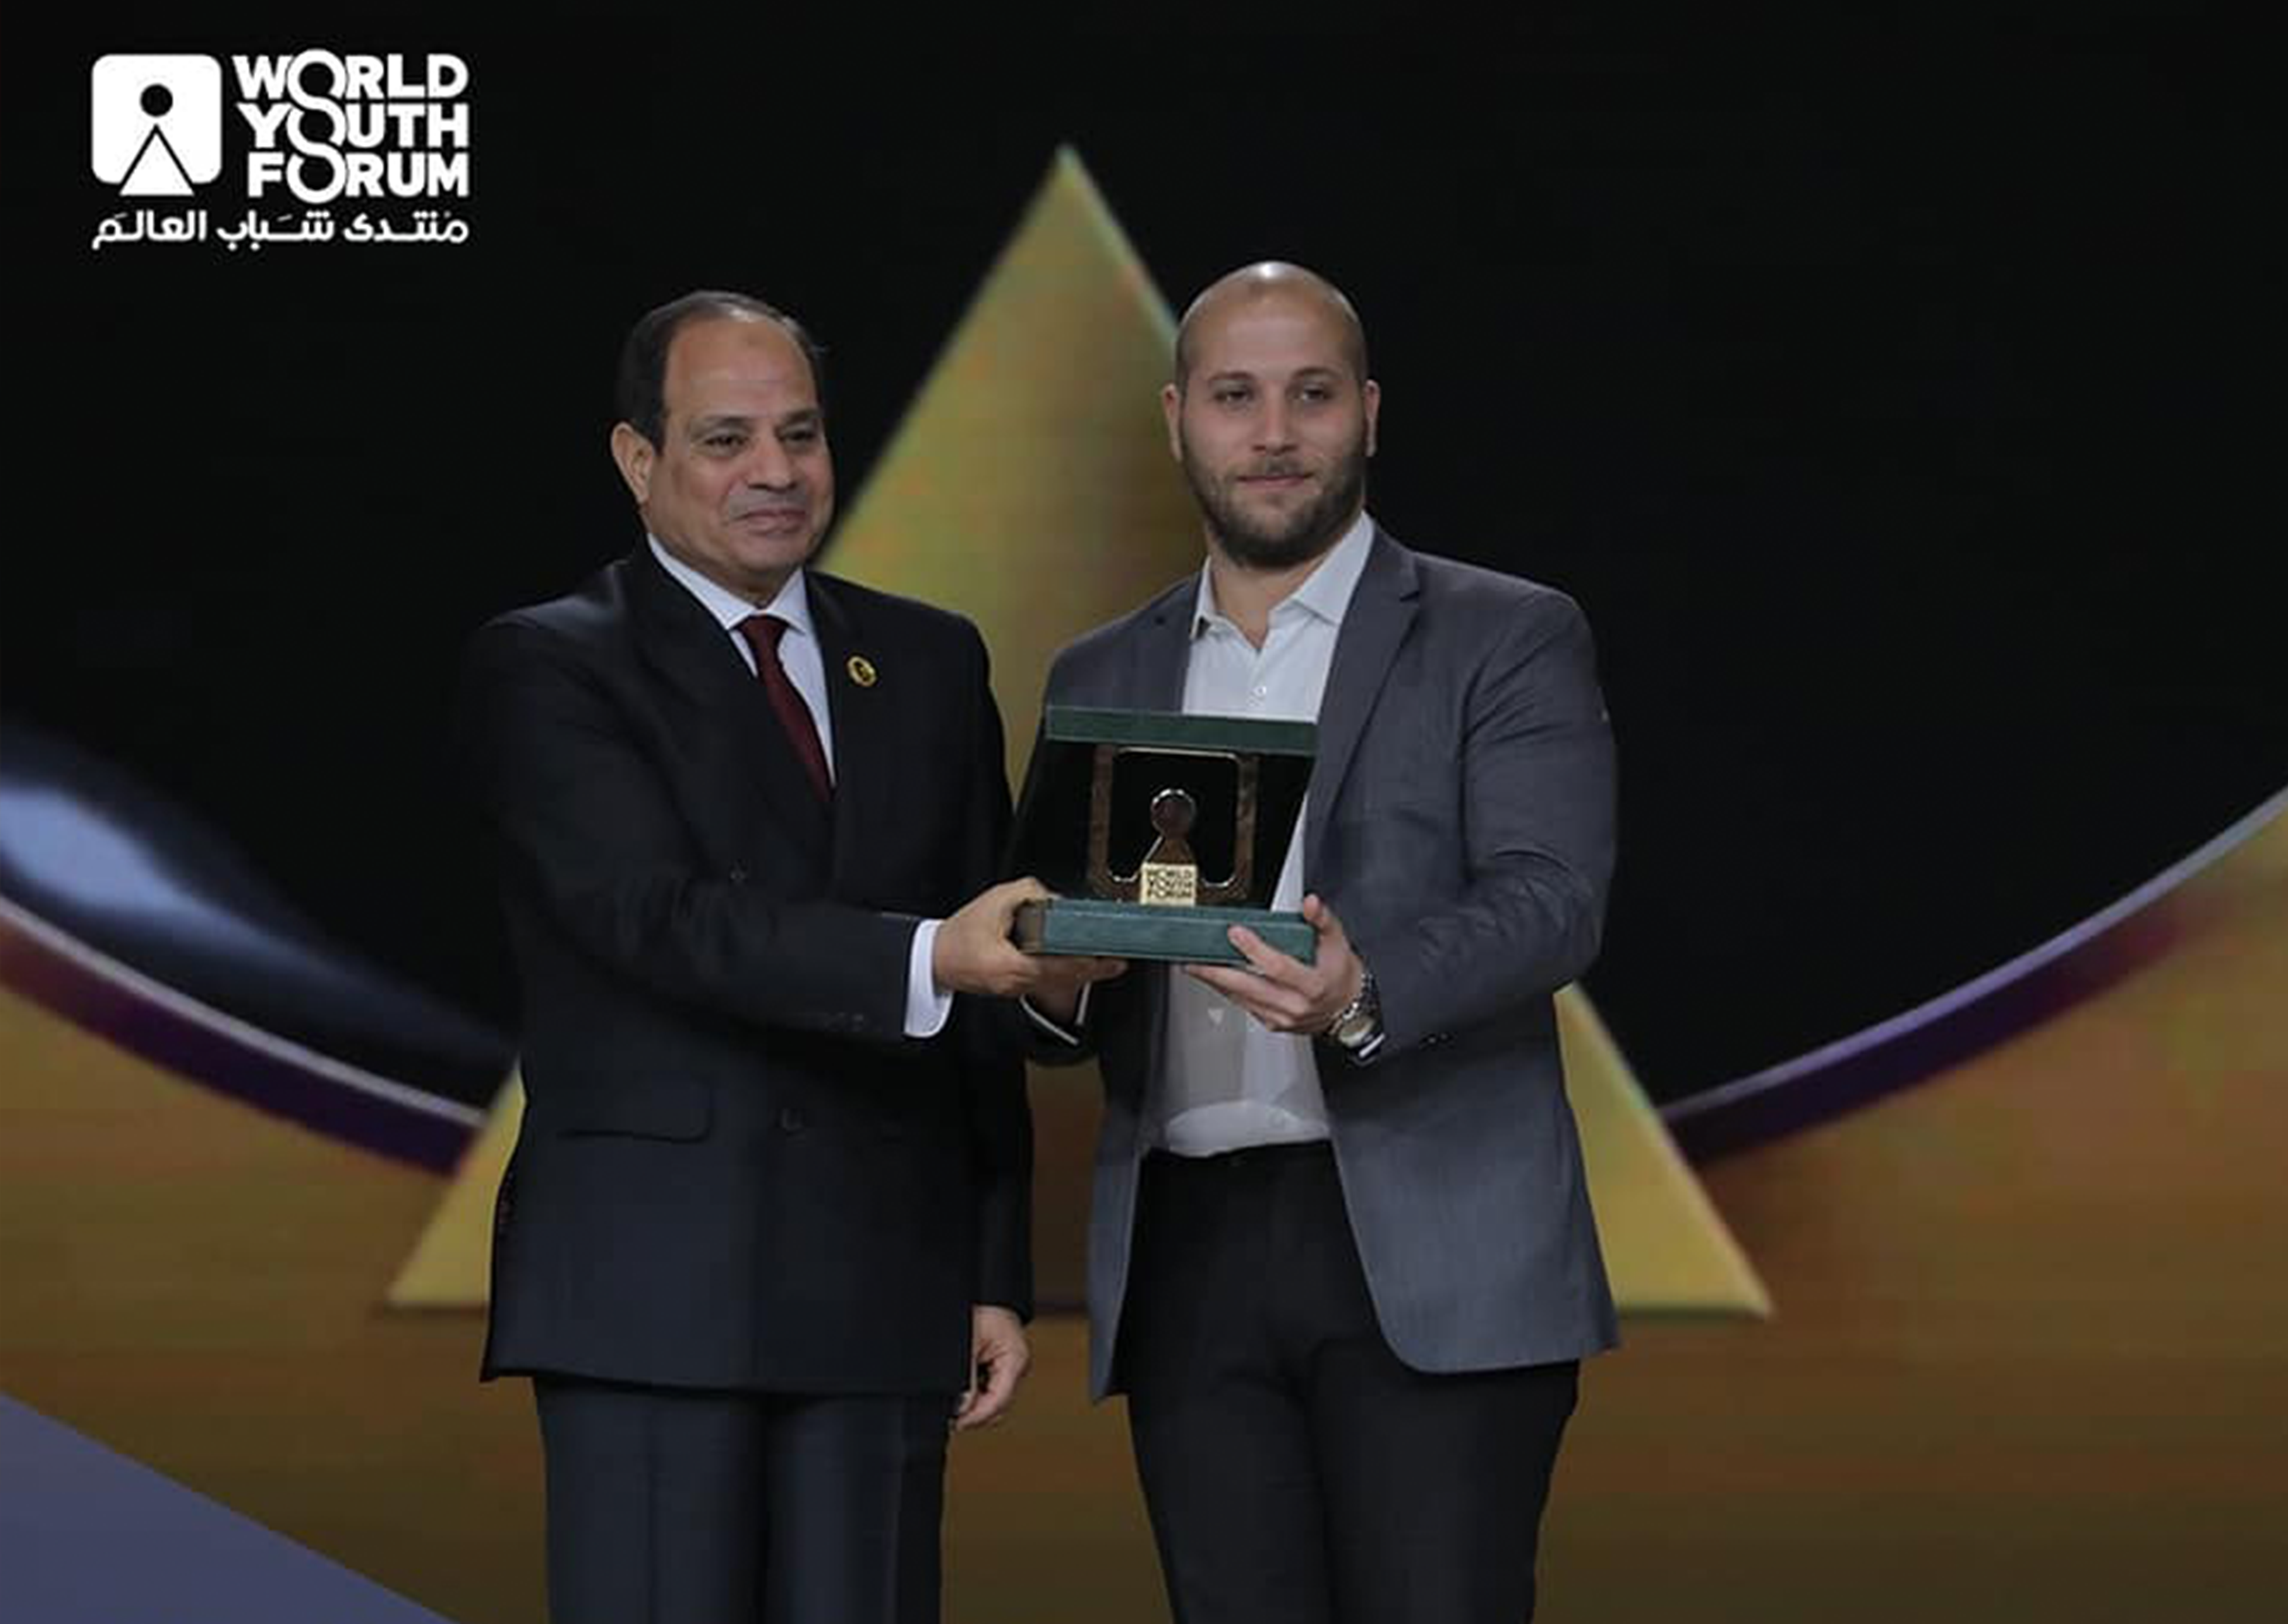 AAL Cup winner with Egyptian President Abdel Fattah El Sisi in WYF 2019.